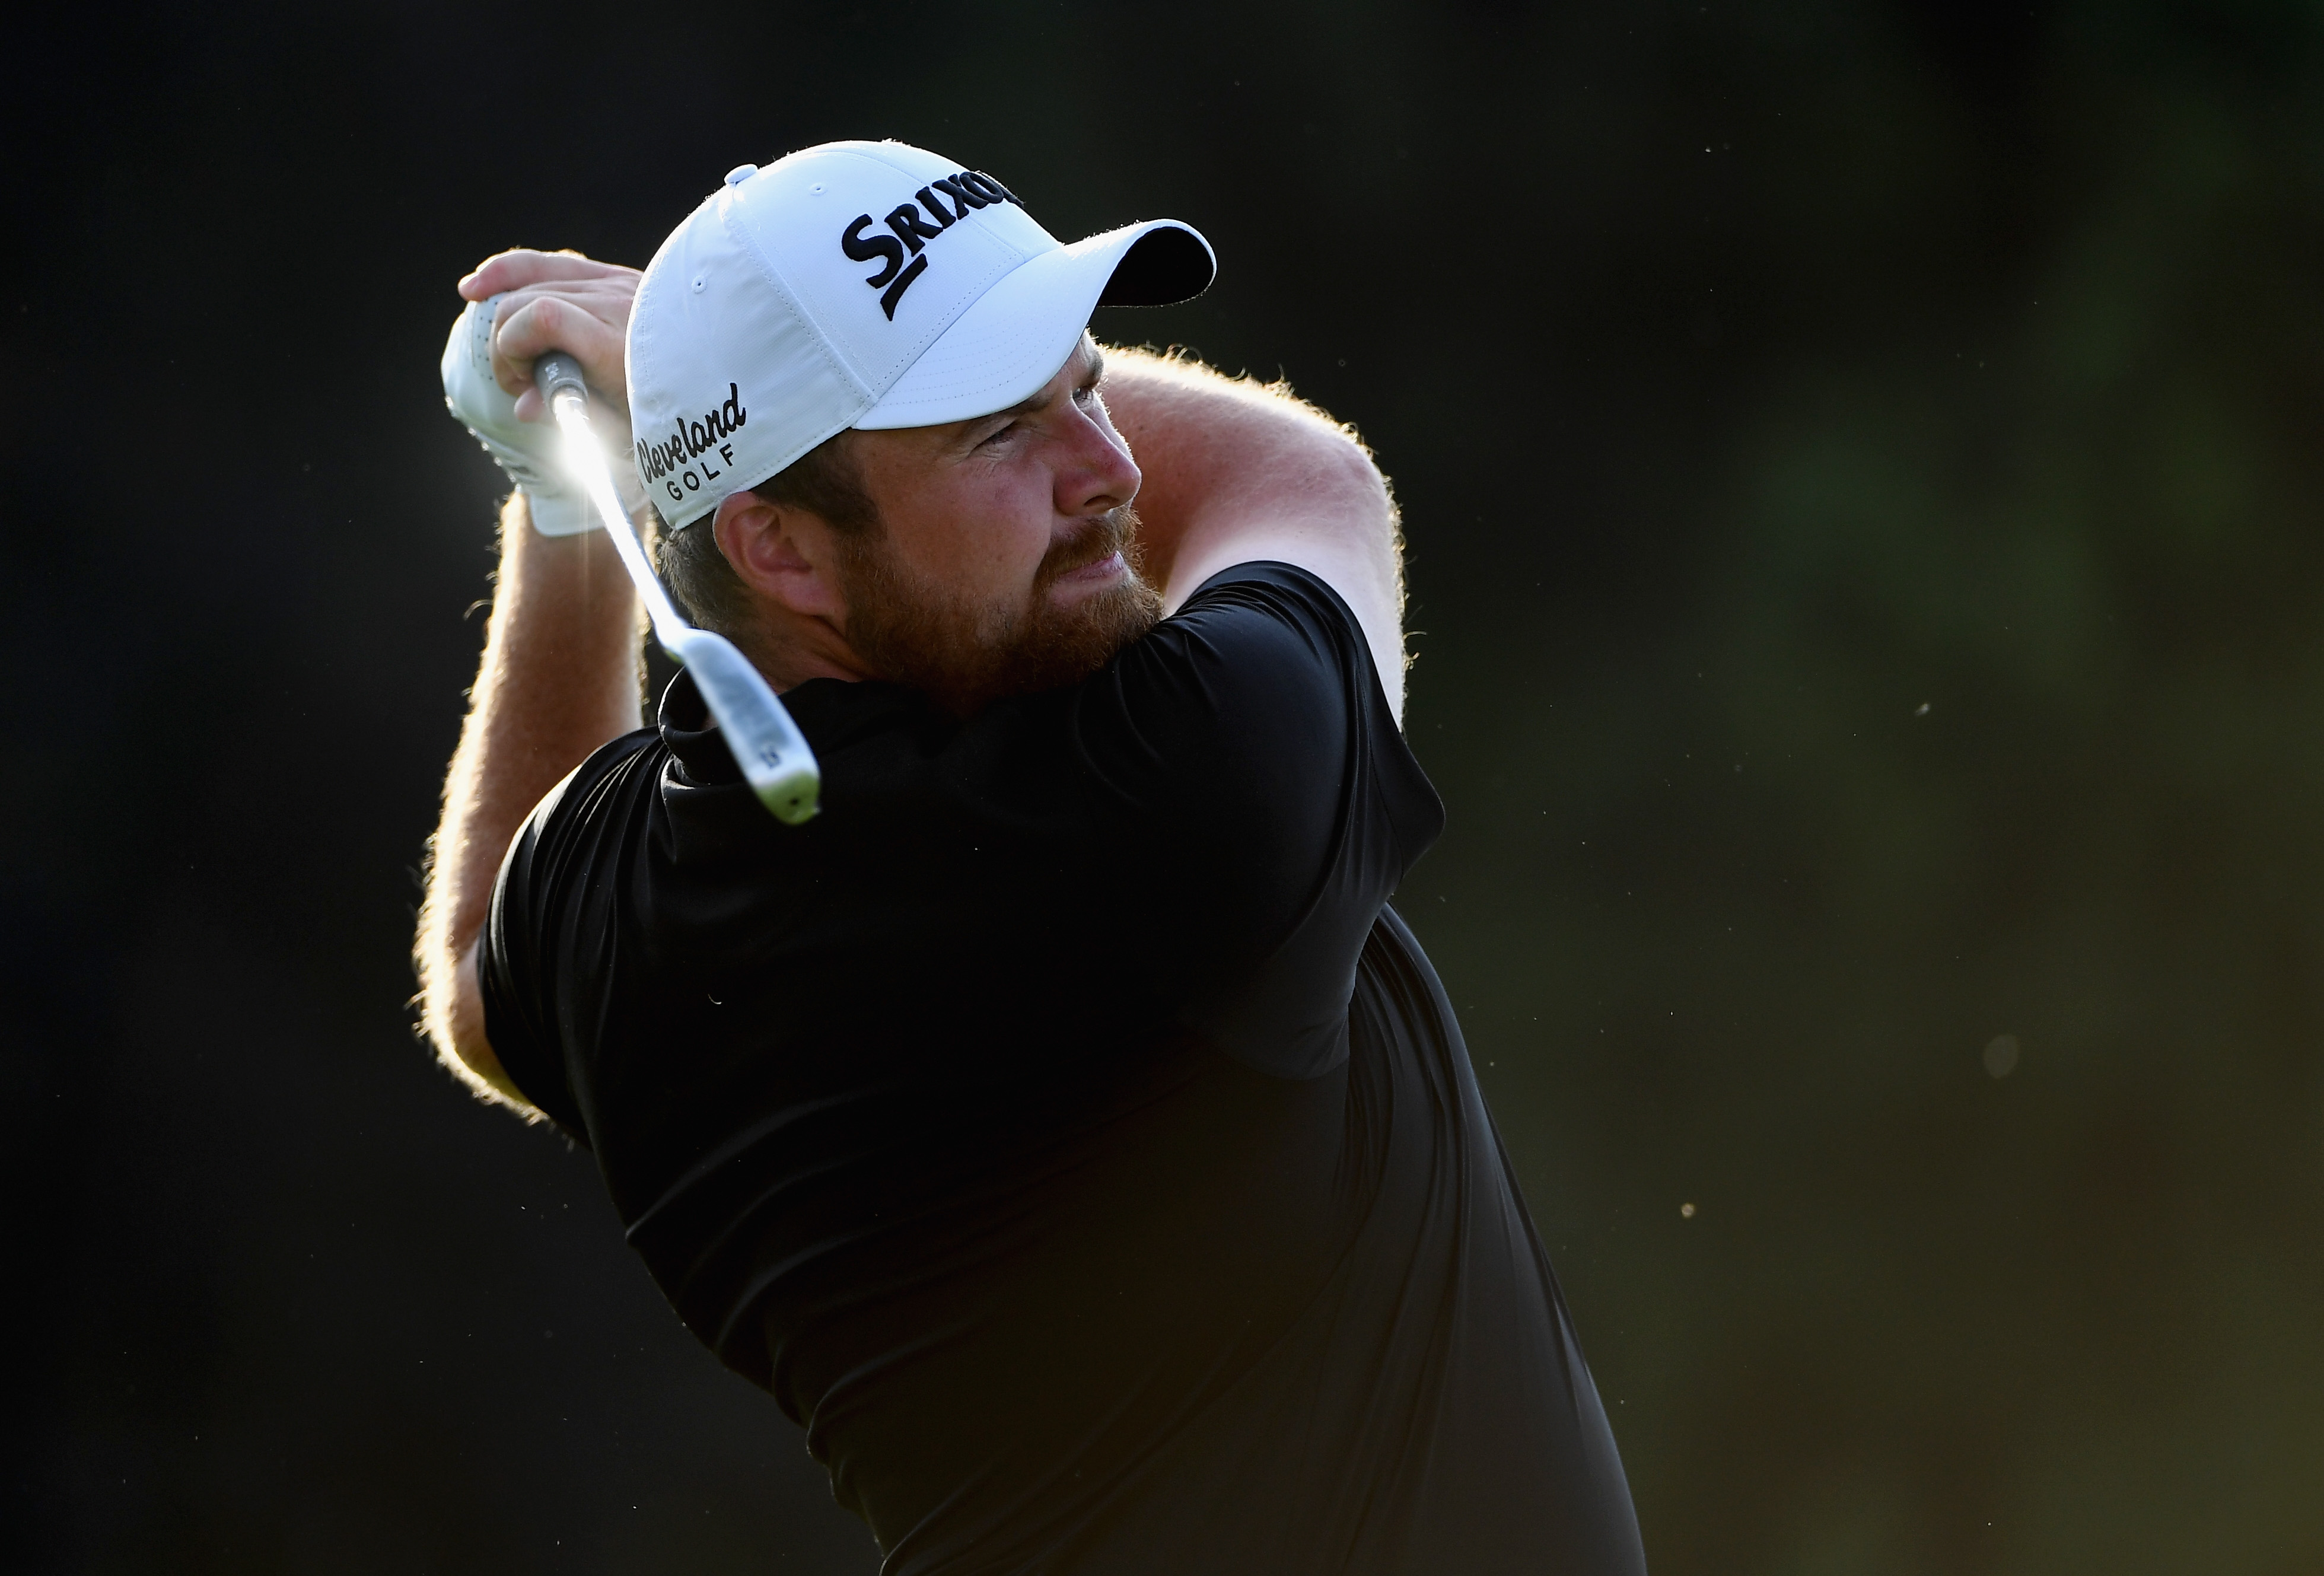 Shane Lowry will take a four-shot lead into the final round of the U.S. Open. (Getty Images)